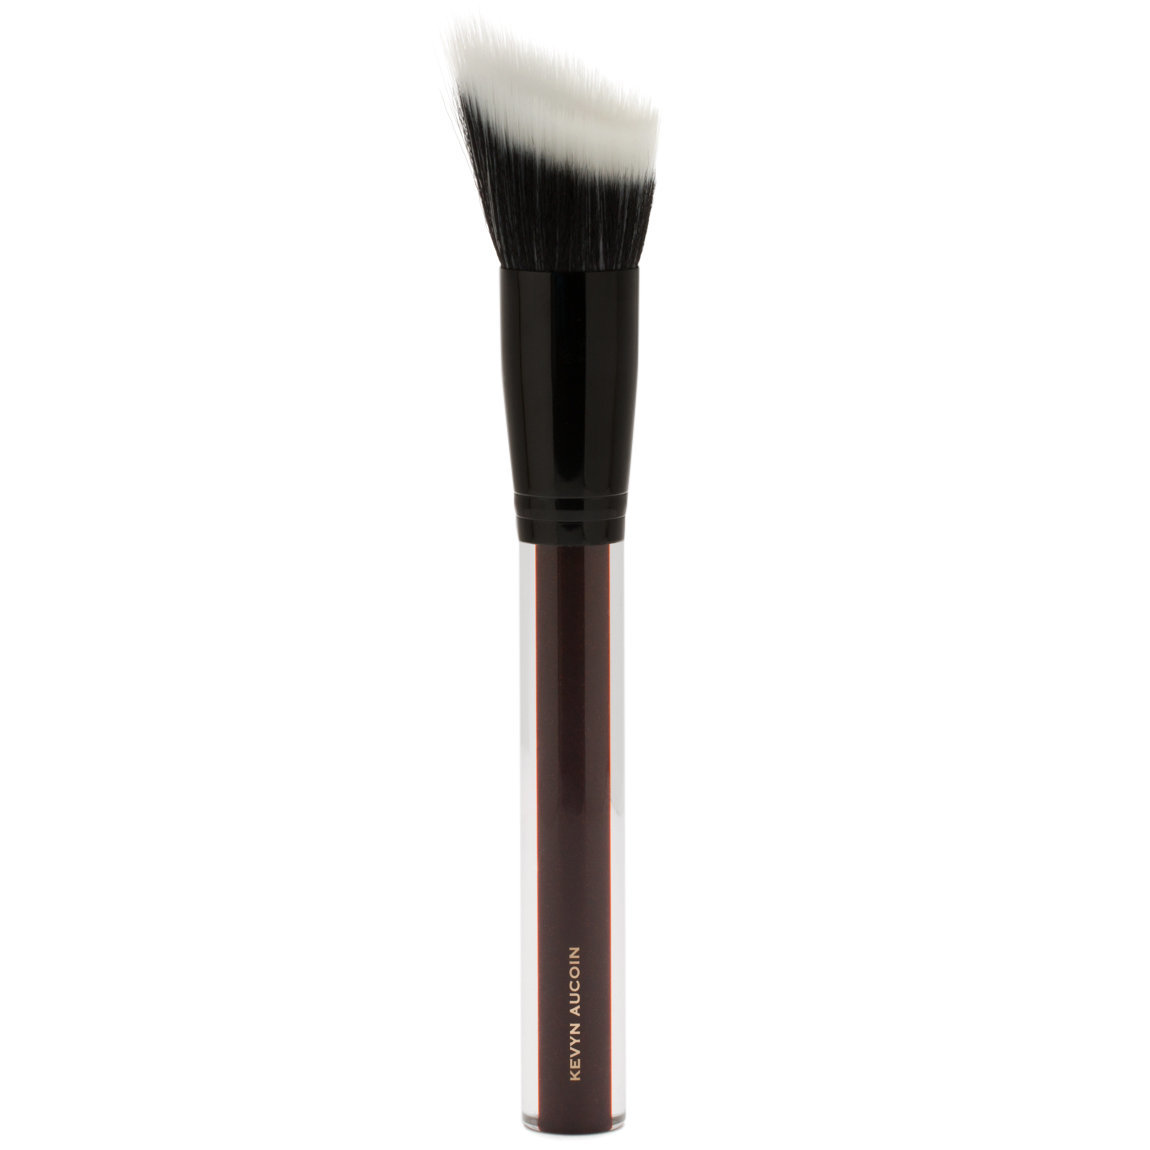 Kevyn Aucoin The Neo Powder Brush product swatch.